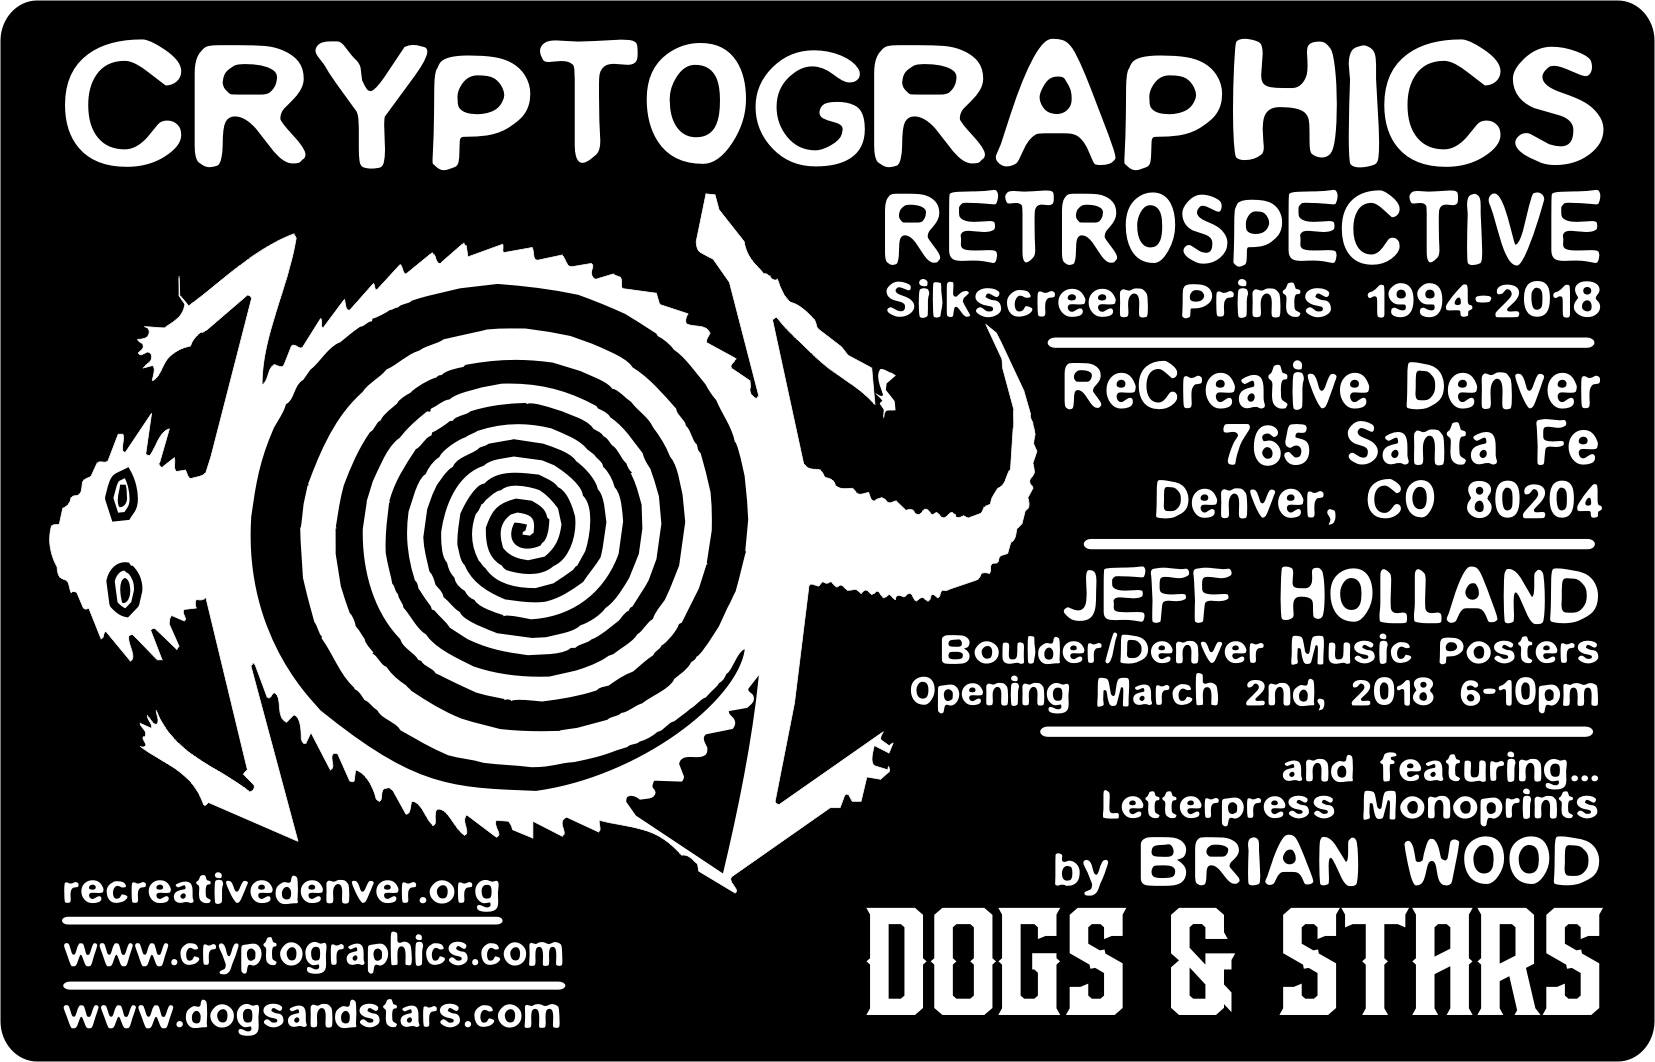 letterpress art show dogs and stars cryptographics denver recreative march 2